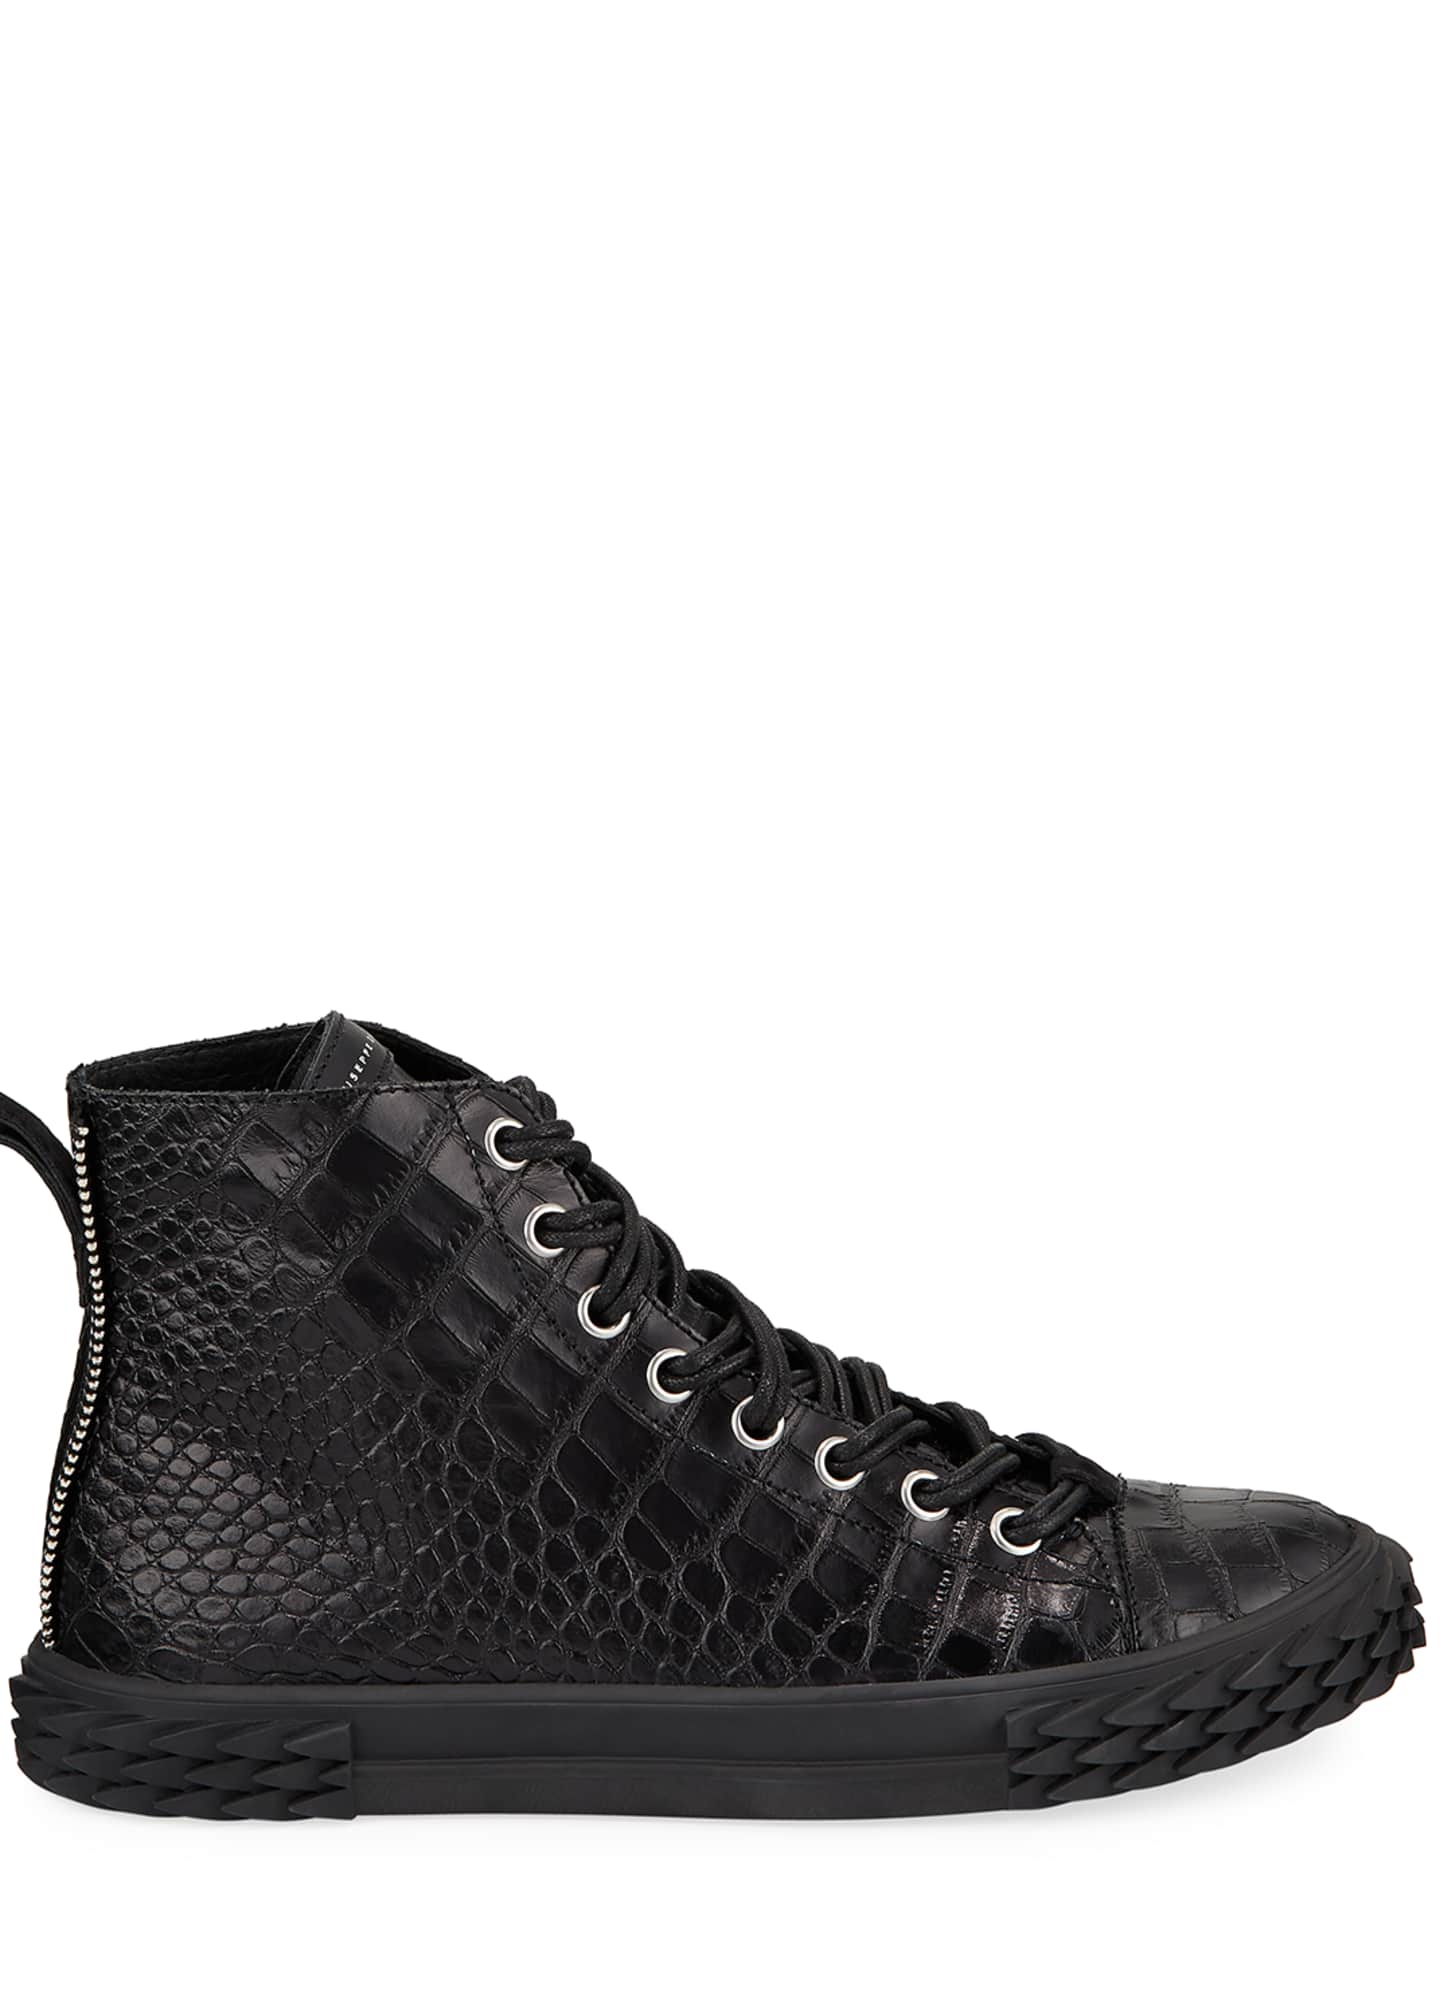 Image 3 of 3: Men's Blabber Croc-Embossed High-Top Sneakers